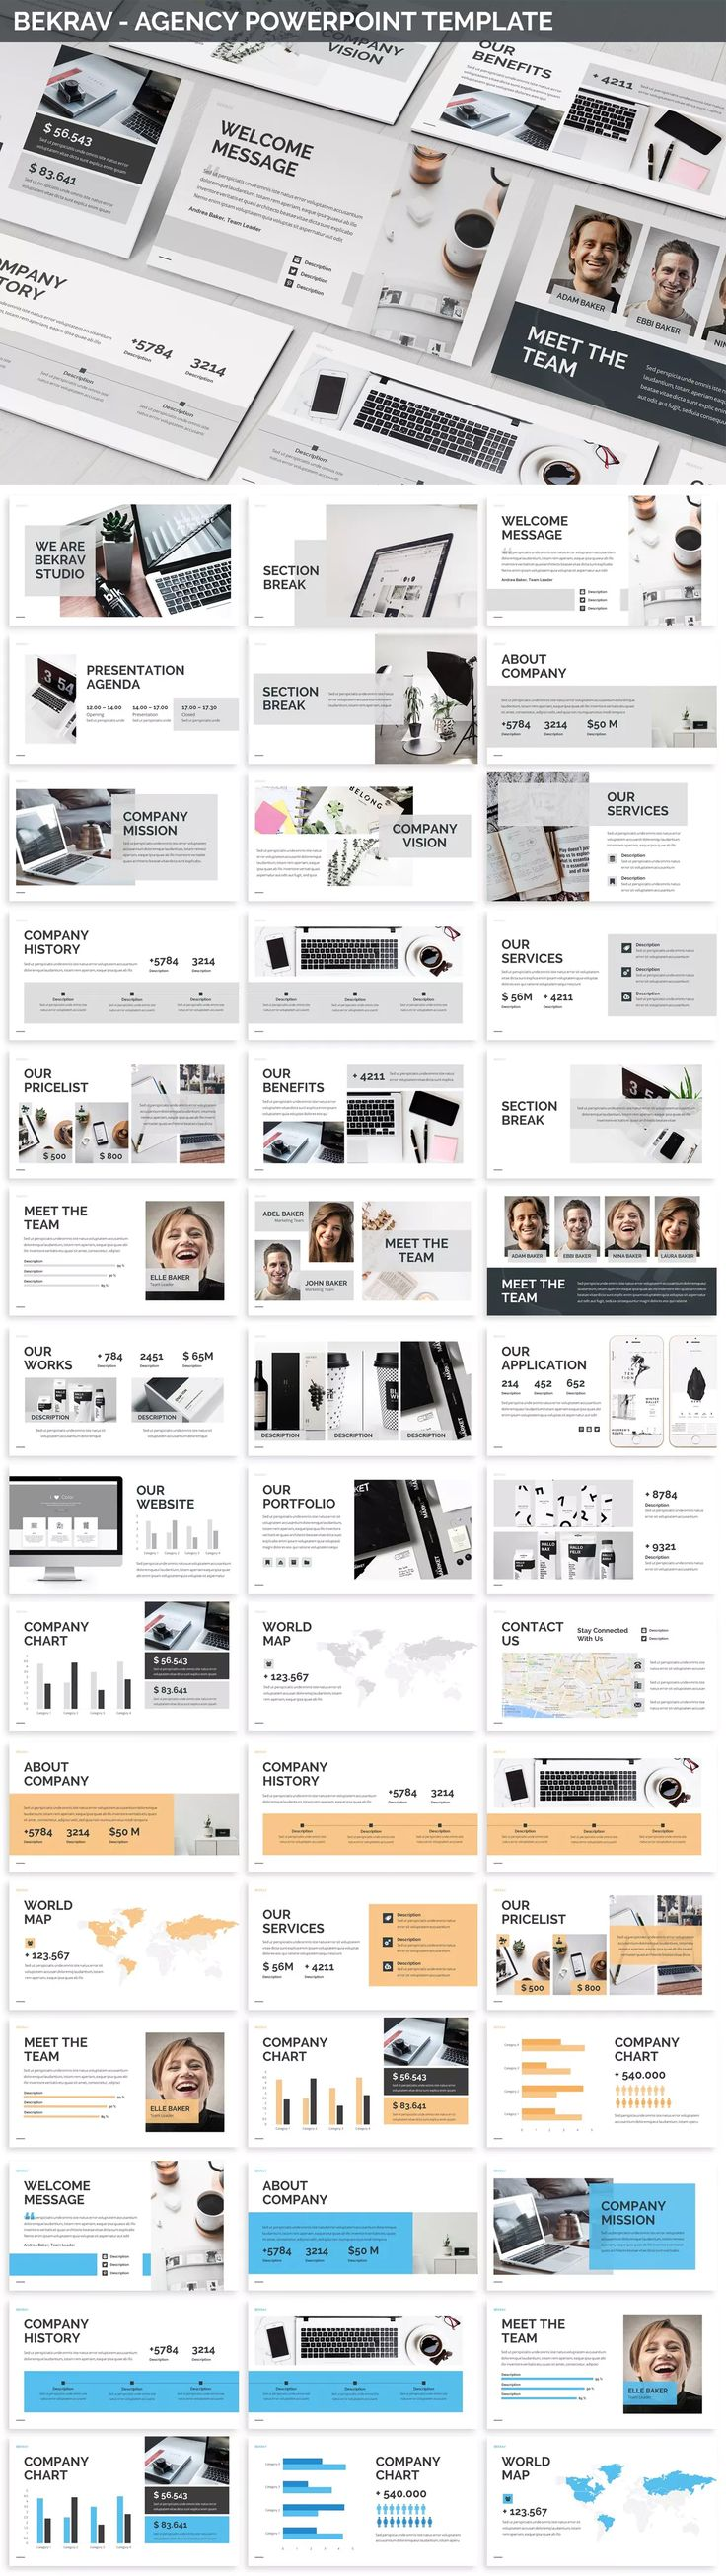 Agency PowerPoint Template